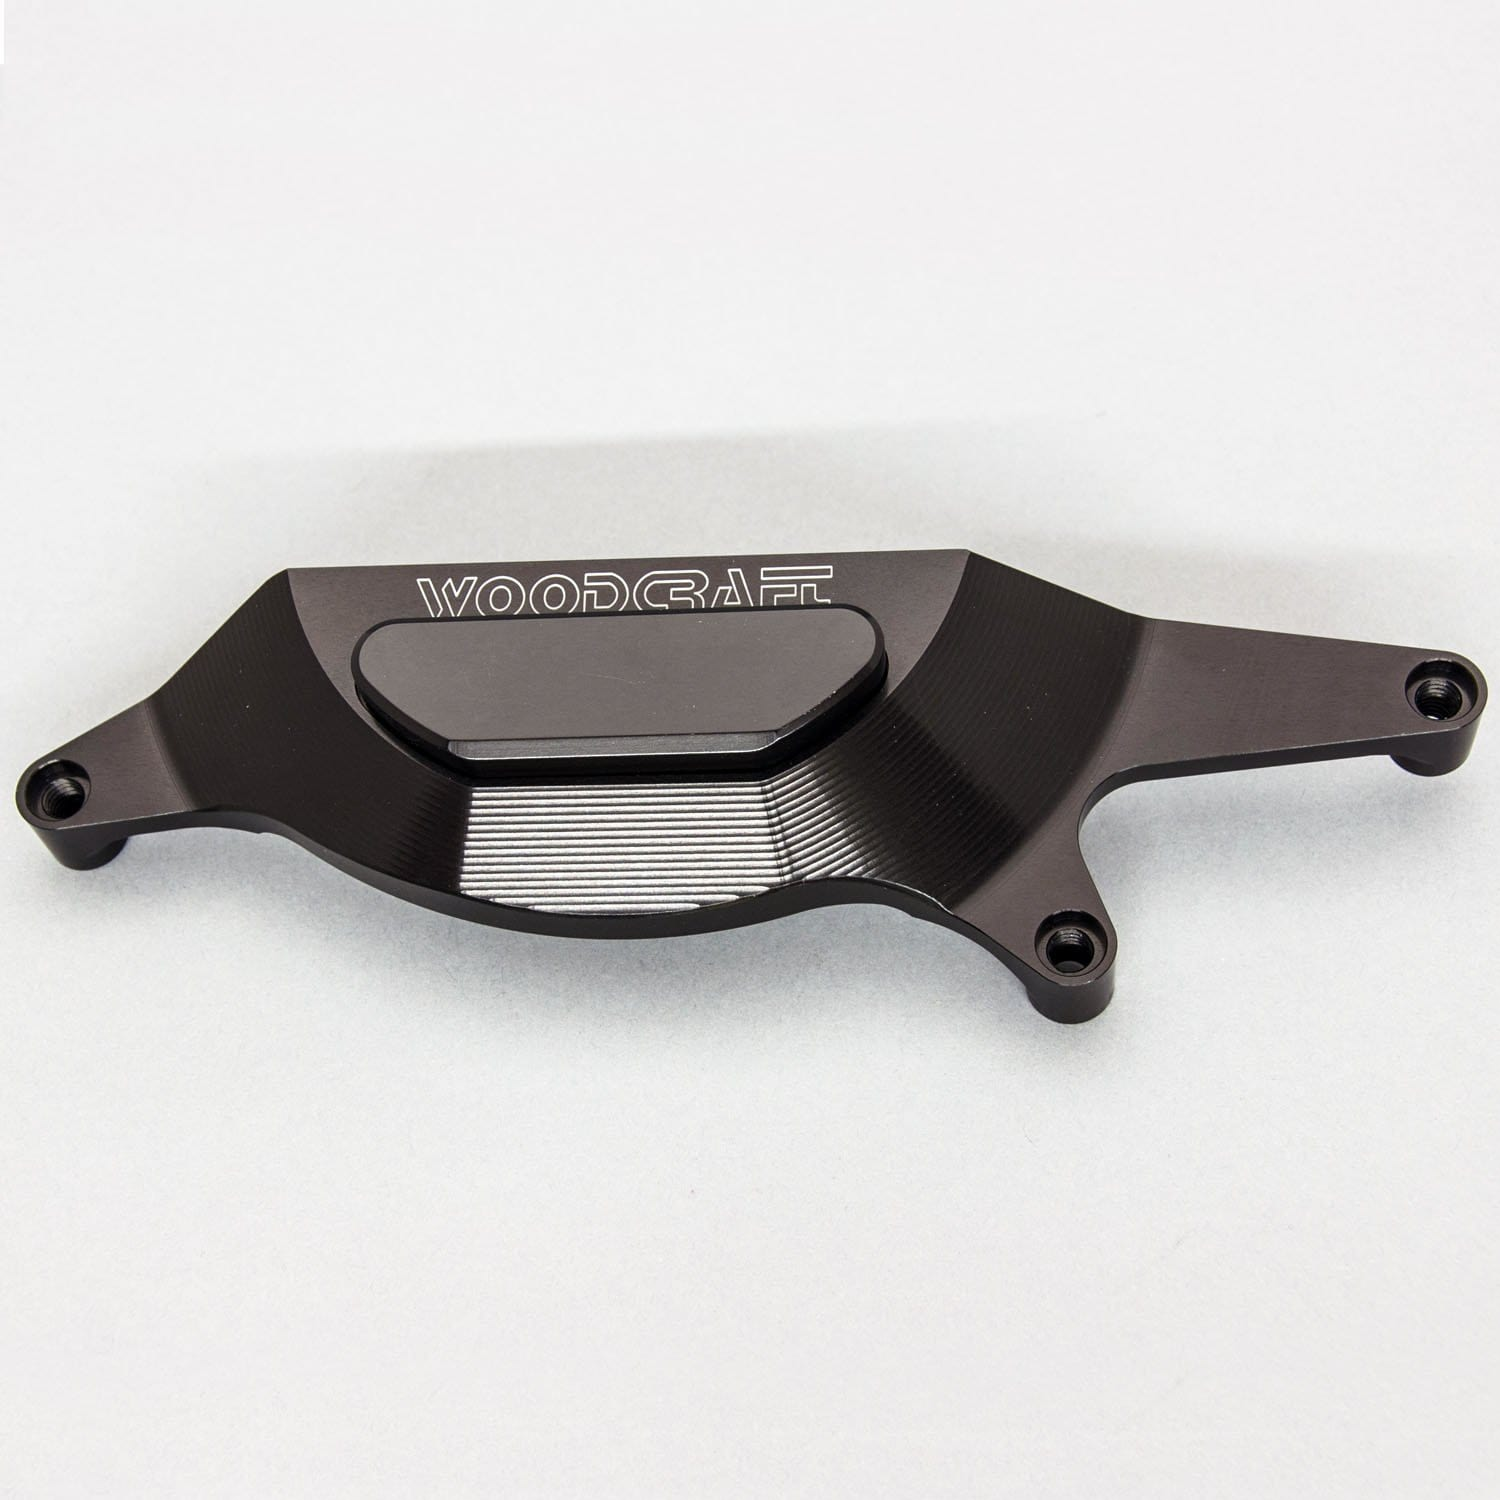 60-0144RC Kawasaki EX 400 Ninja 400 RHS Clutch Cover Protector - Assembly - Woodcraft Technologies - Motorcycle Parts